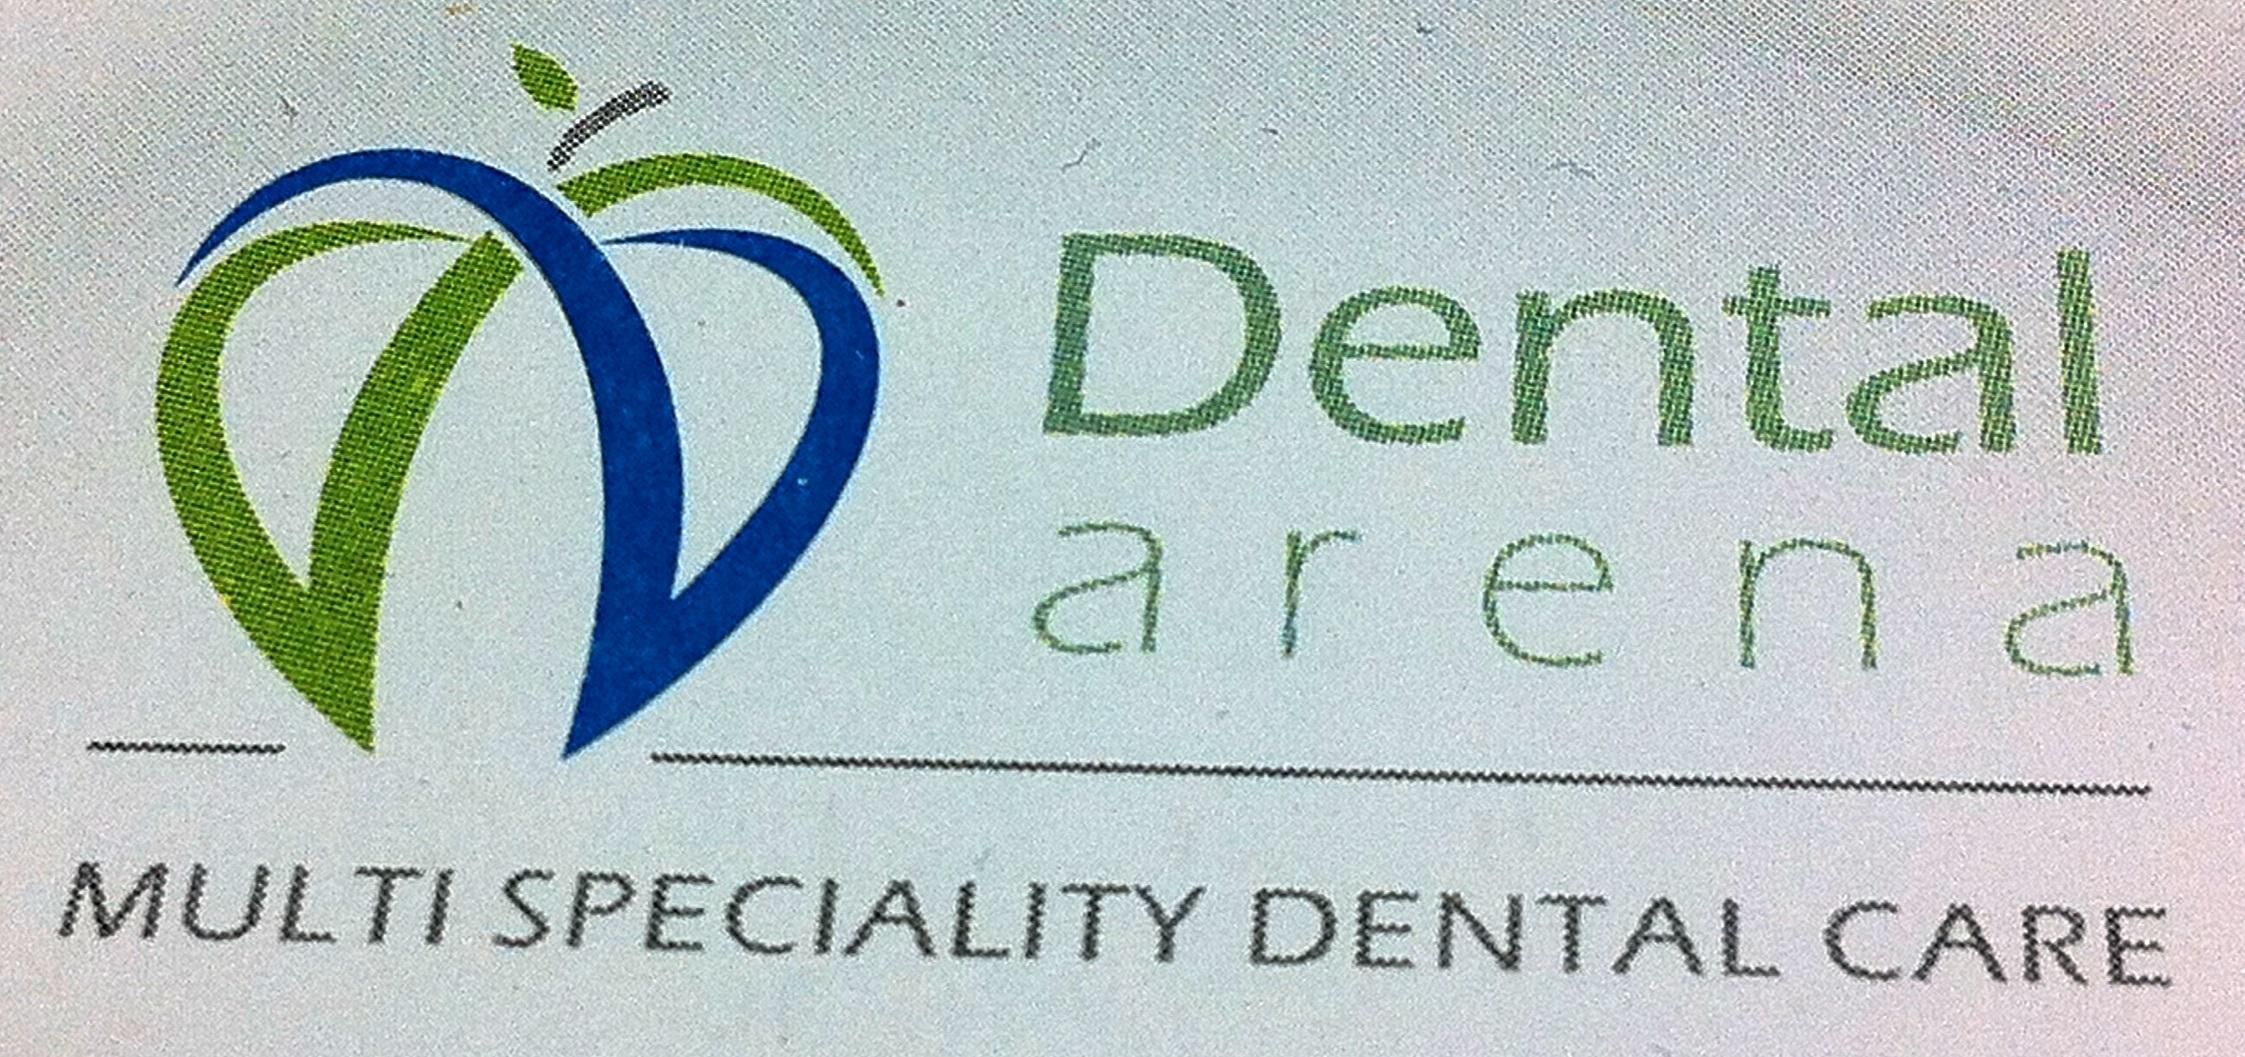 Dental Arena